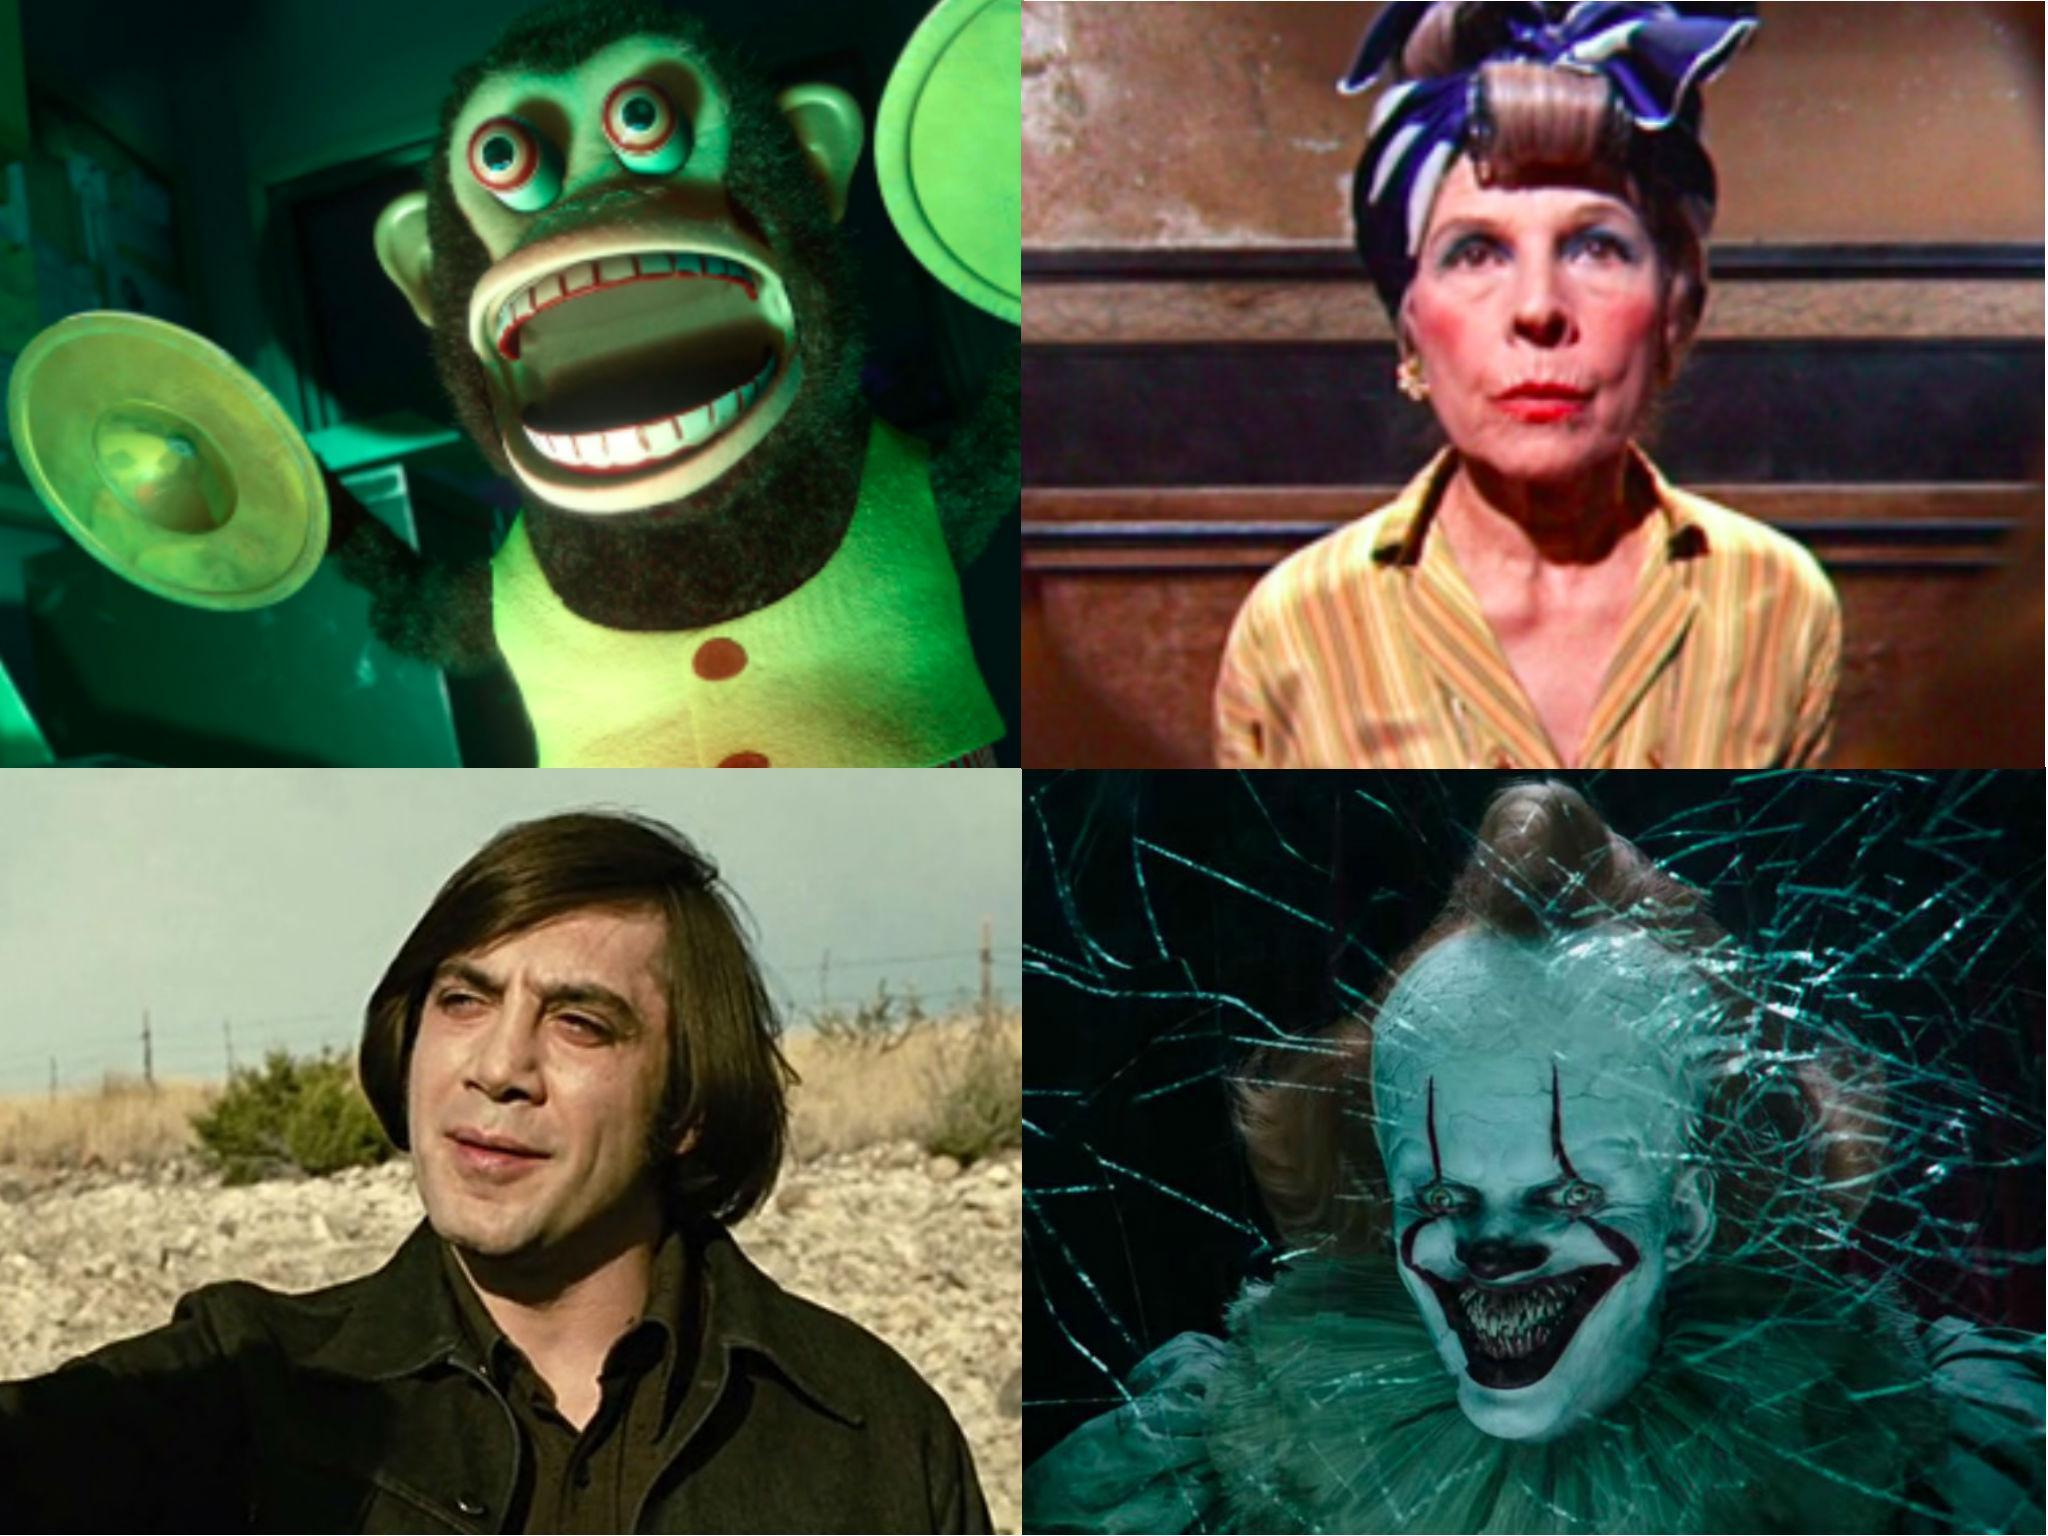 39 movie characters that gave us nightmares